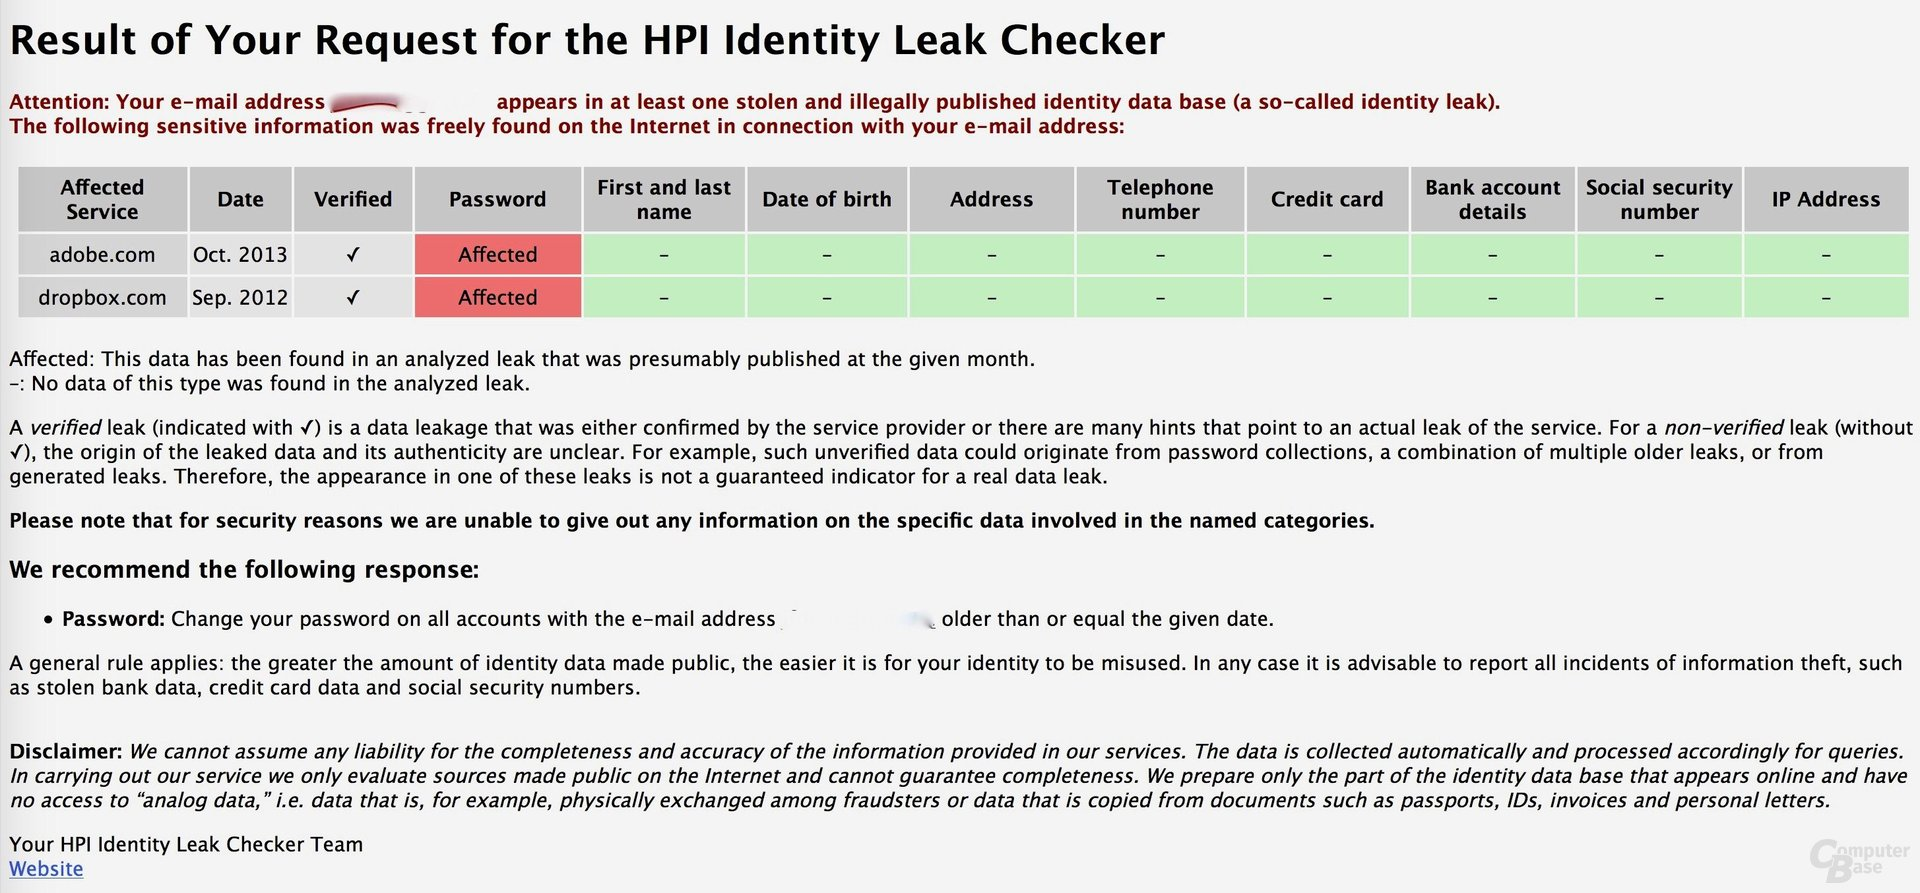 HPI Identity Leak Checker